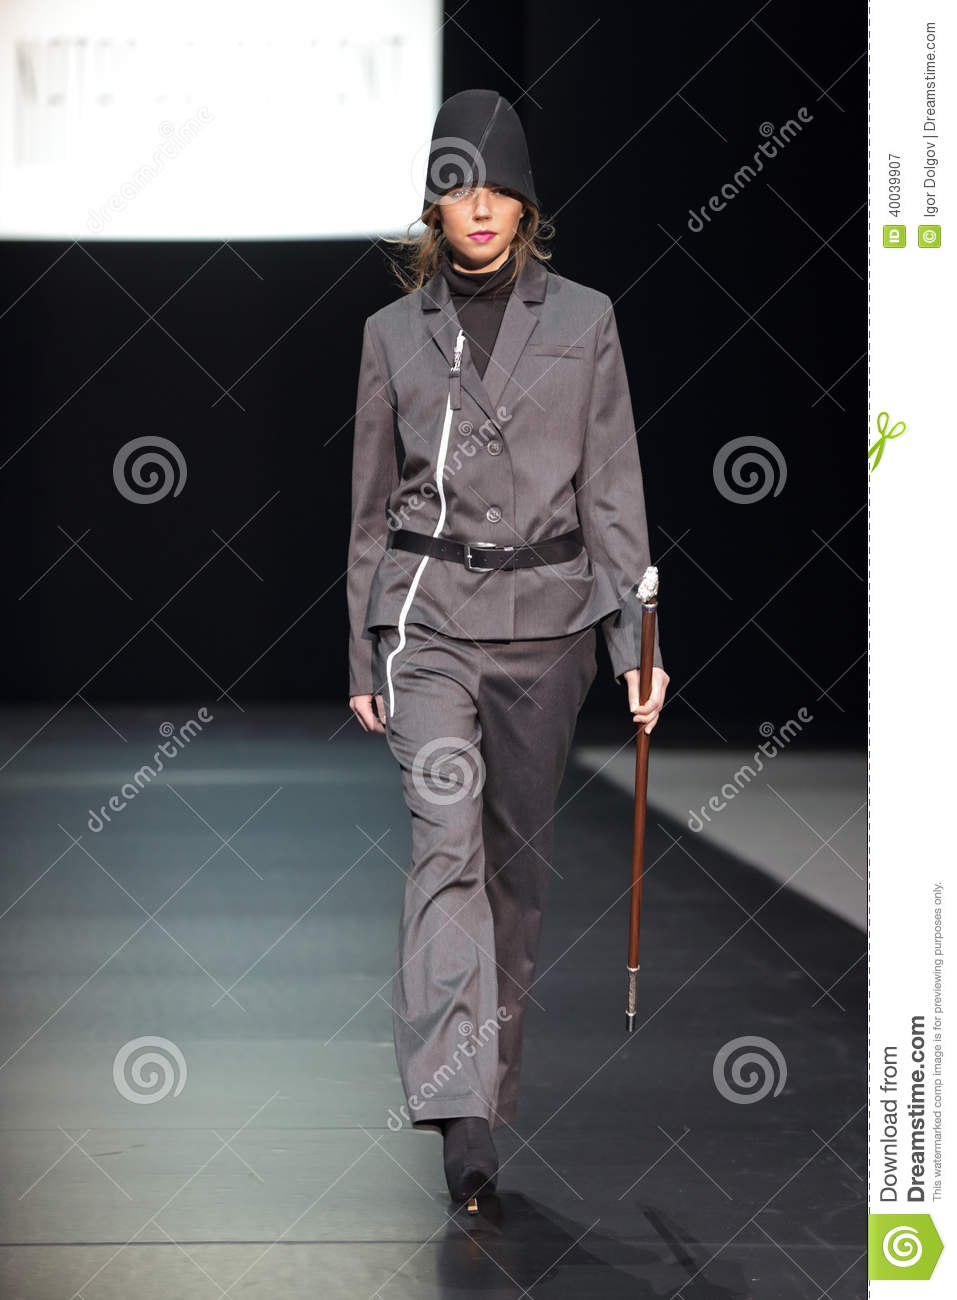 Moscow Fashion Week Editorial Photography Image 40039907